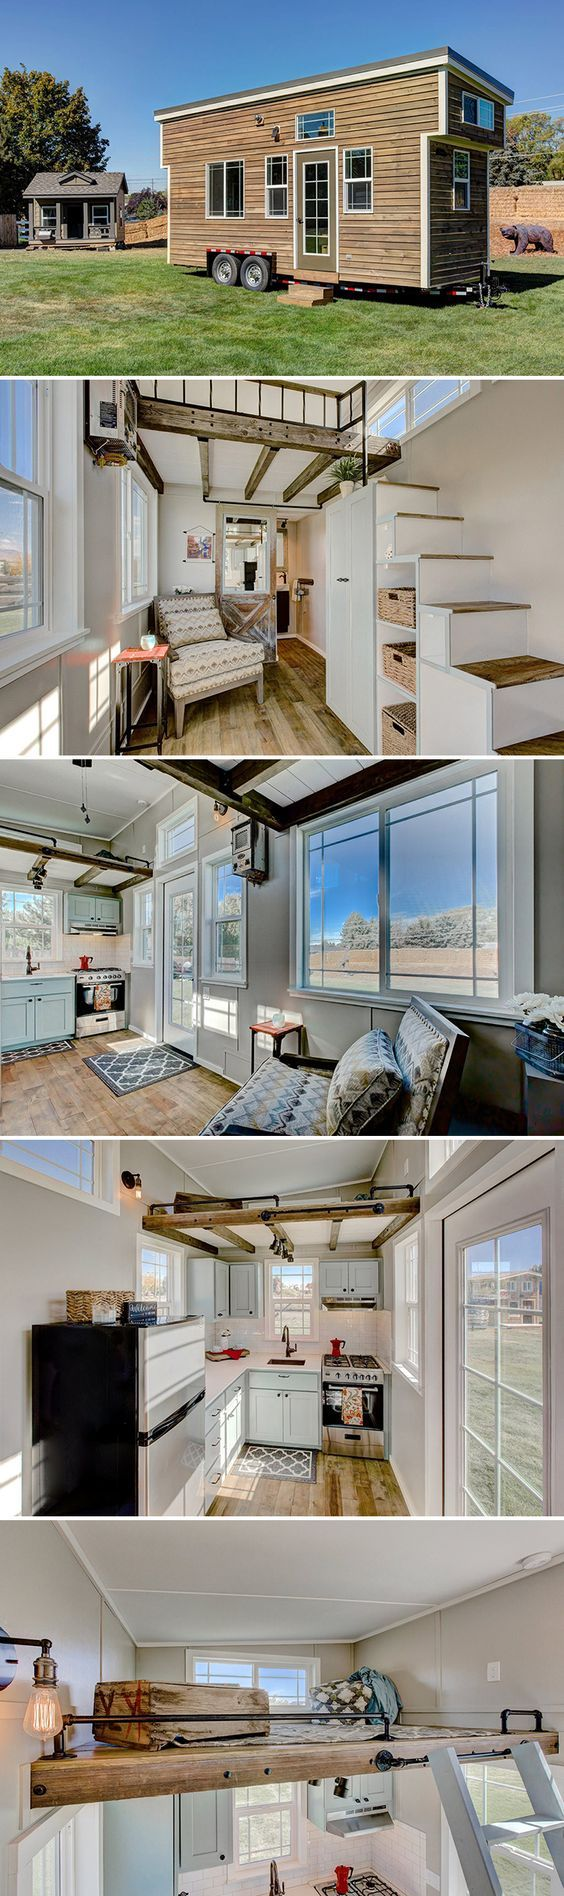 """This 22' custom tiny house on wheels features 5"""" hickory hardwood flooring, two bedroom lofts, and detailed woodwork including a distressed barn door."""